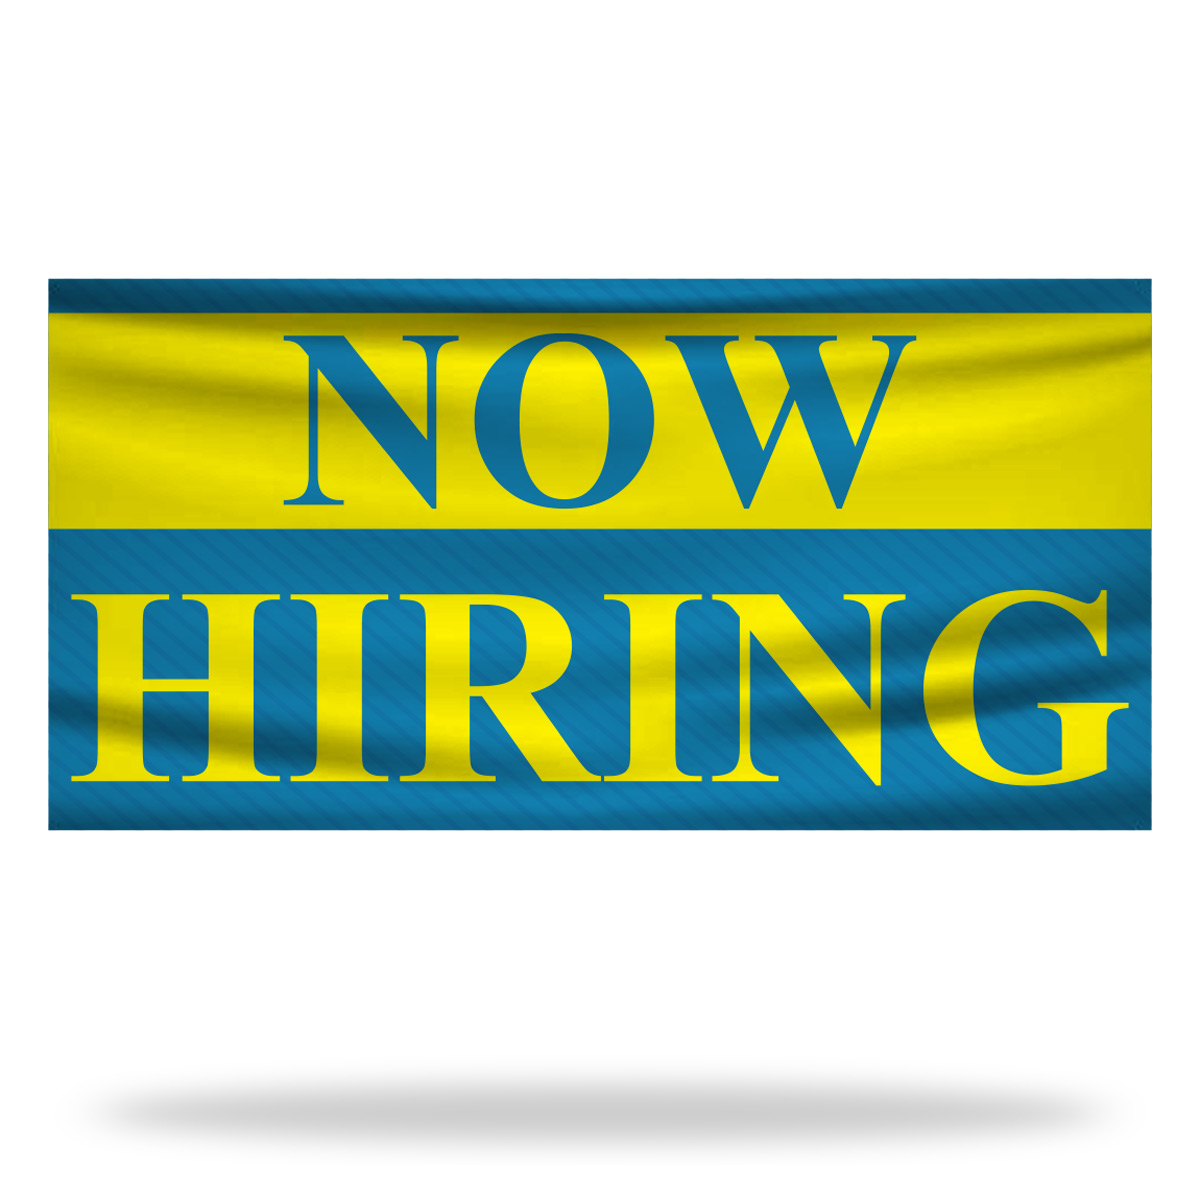 Now Hiring Flags & Banners Design 04